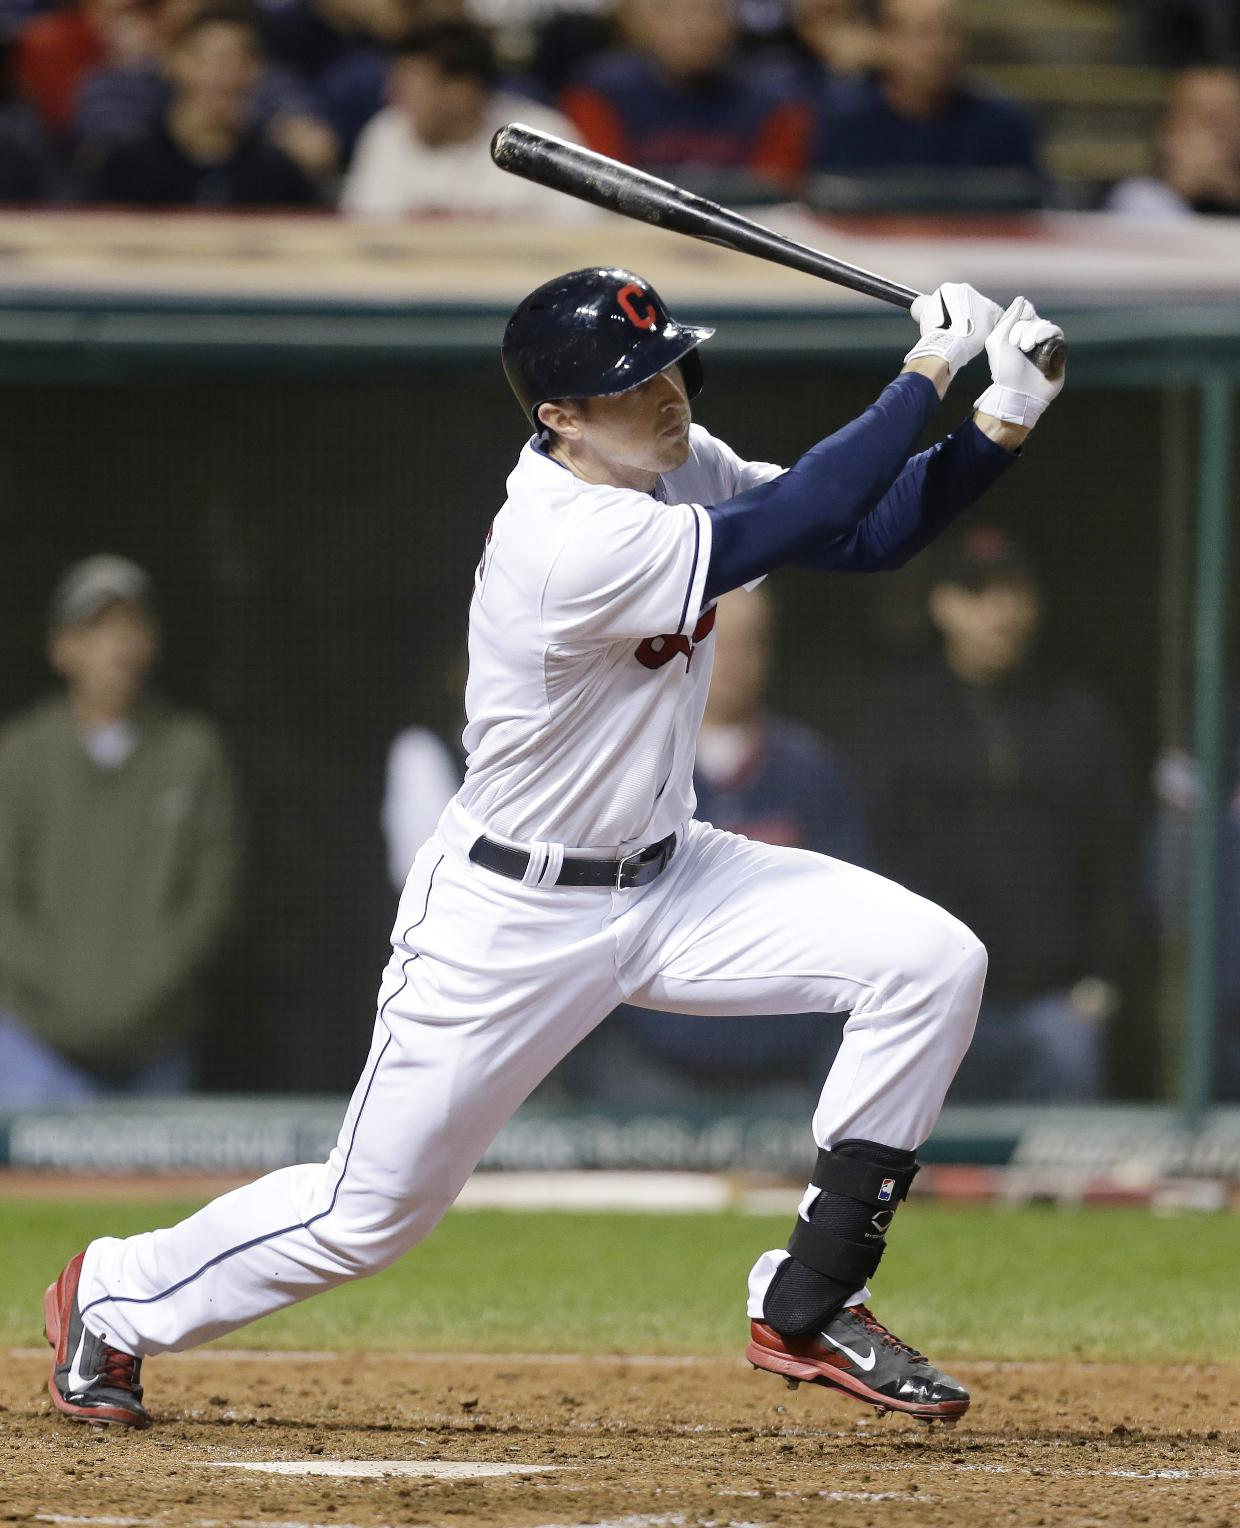 In this Sept. 25, 2013 file photo, Cleveland Indians' Drew Stubbs hits an RBI-sacrifice fly off Chicago White Sox starting pitcher Dylan Axelrod in the sixth inning of a baseball game, in Cleveland. The Indians have acquired left-hander Josh Outman from Colorado for outfielder Drew Stubbs, Wednesday, Dec. 18, 2013